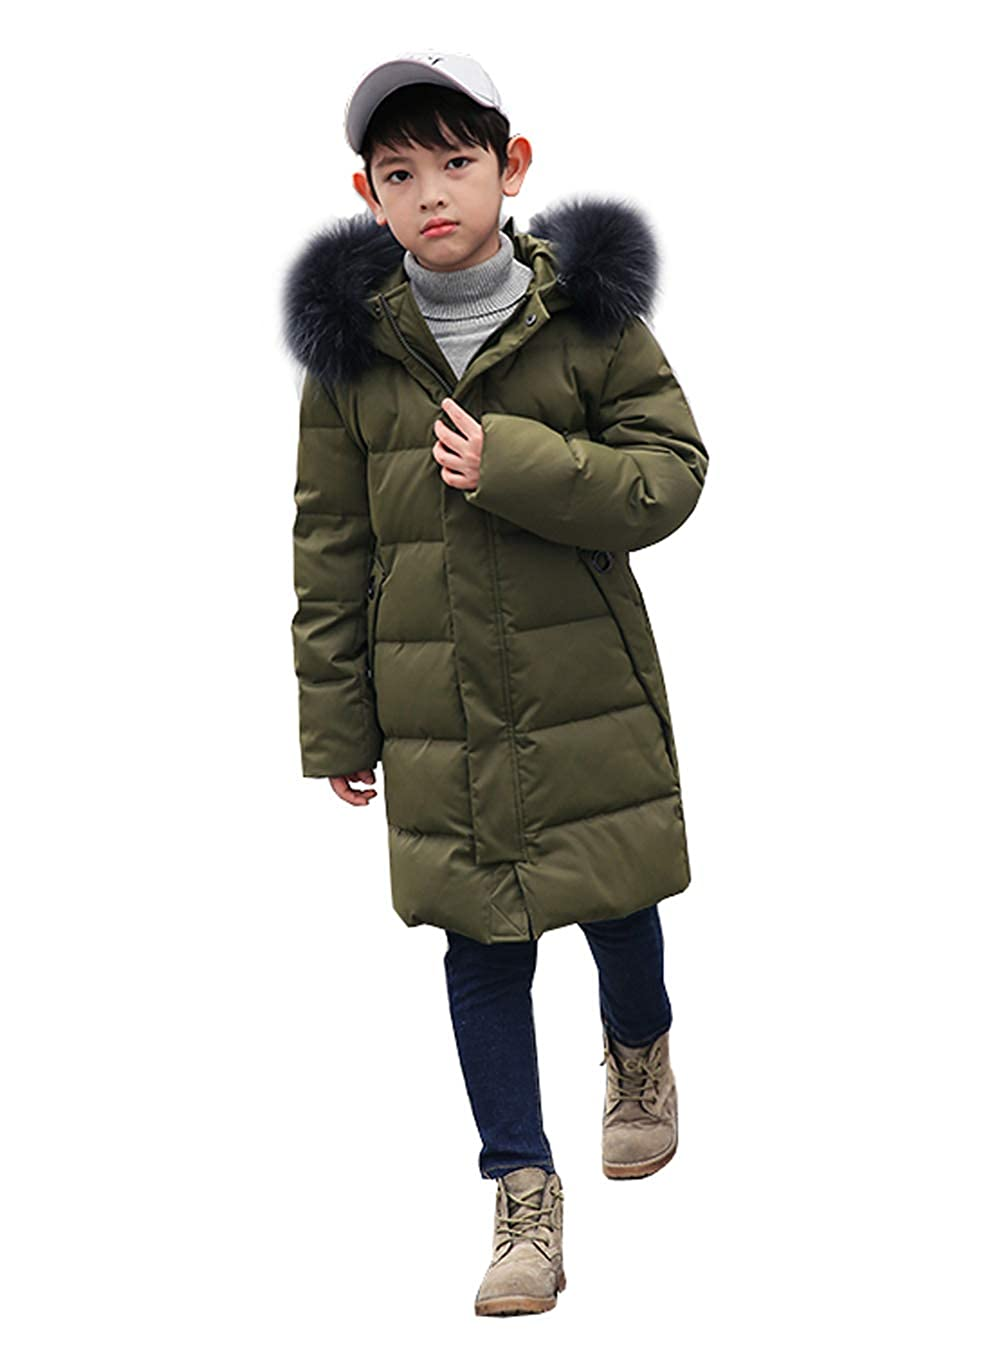 YEEFINE SNOWING Kids Mid-Long Down Jacket Puffer Coat for Big Boys